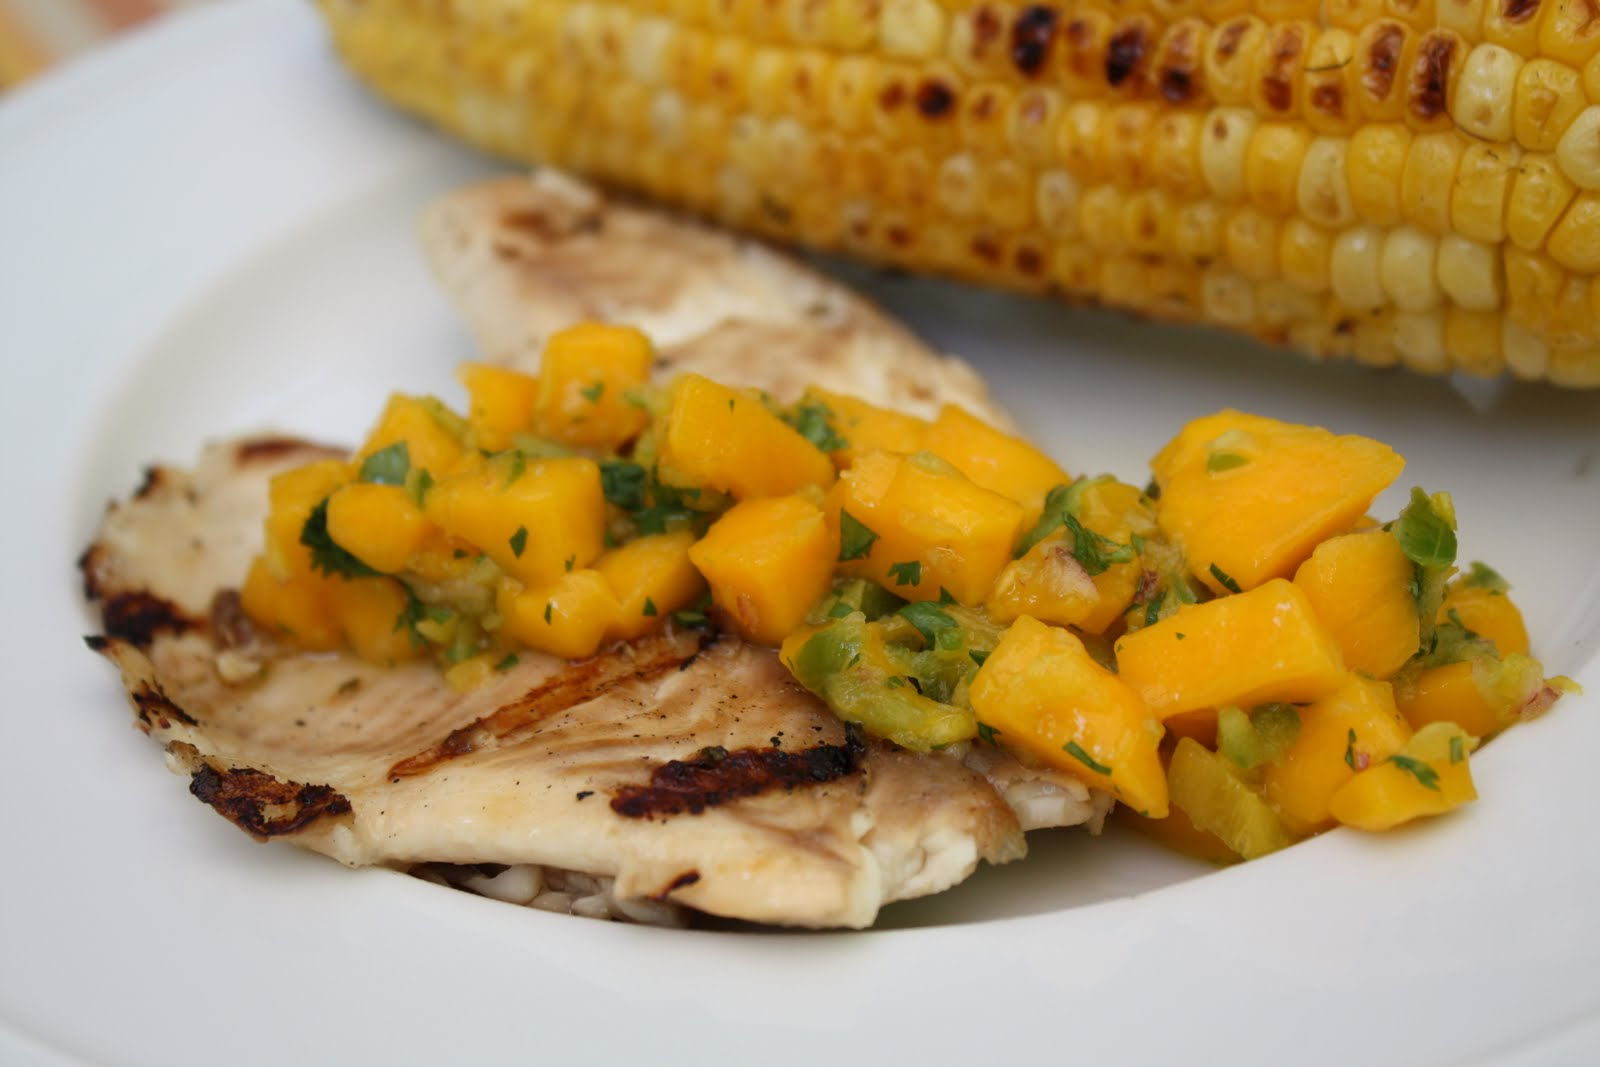 Nicole at Home: Grilled tilapia with mango salsa